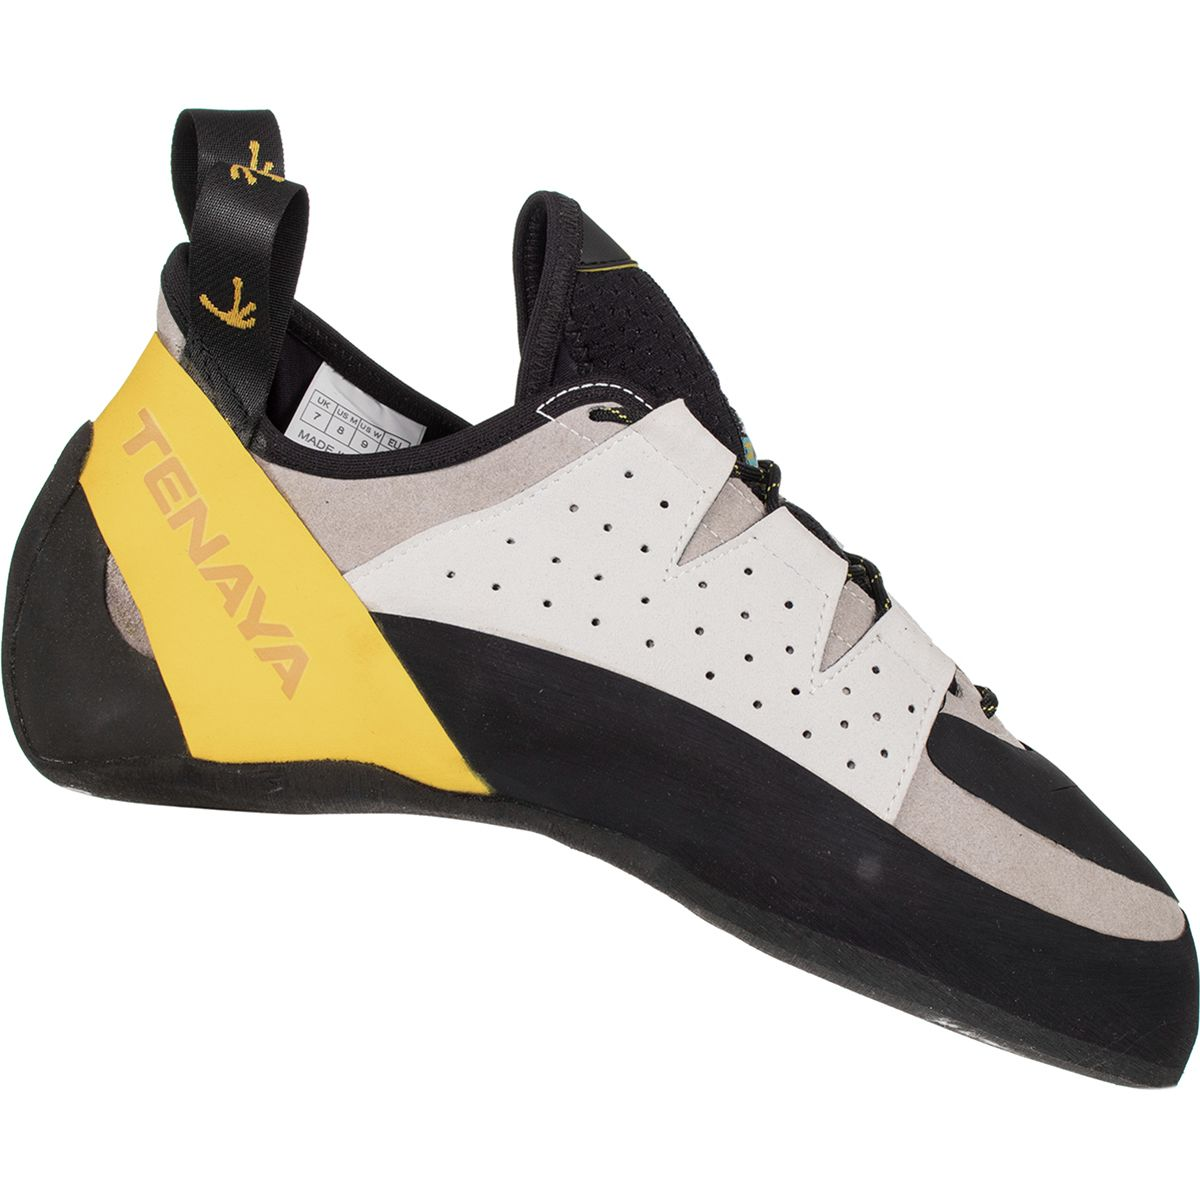 photo: Tenaya Tarifa climbing shoe